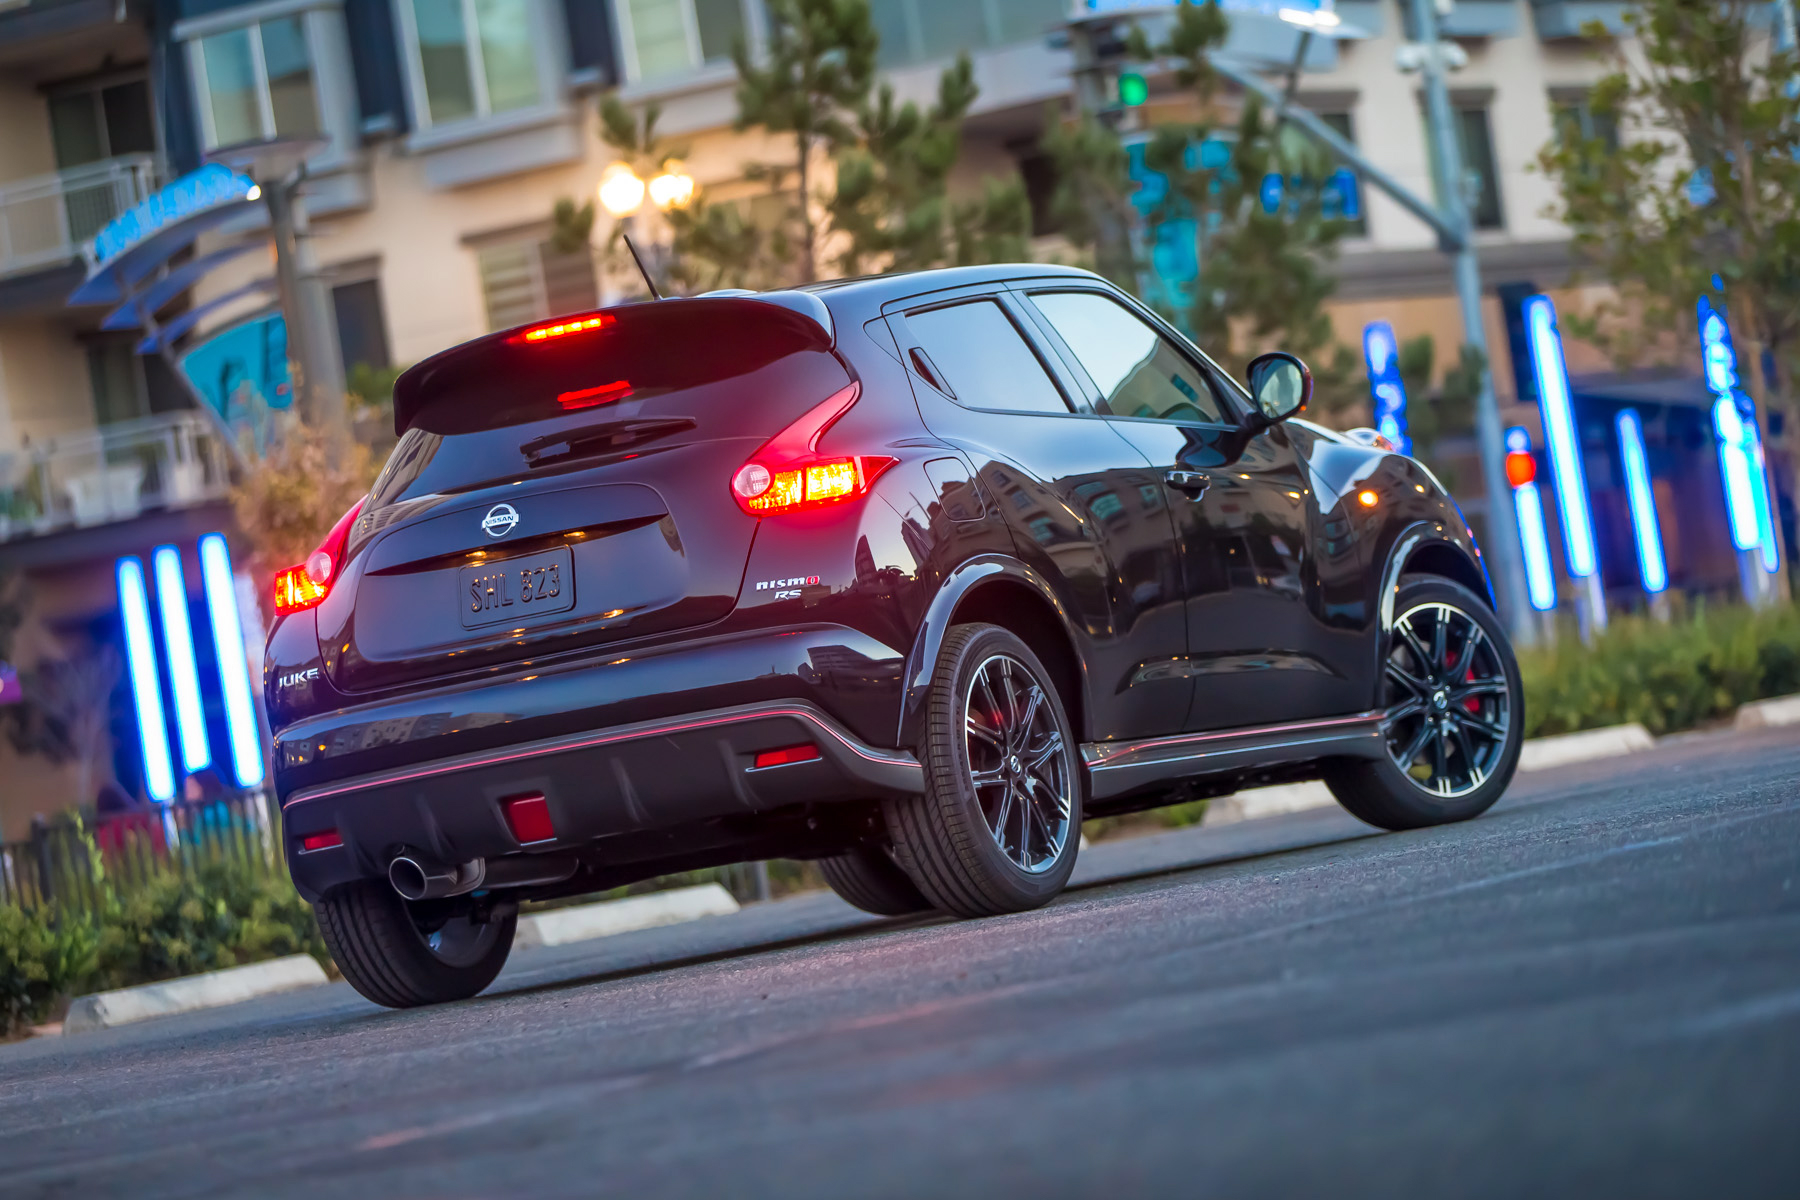 2014 nissan juke nismo rs costs as much as a subaru wrx. Black Bedroom Furniture Sets. Home Design Ideas